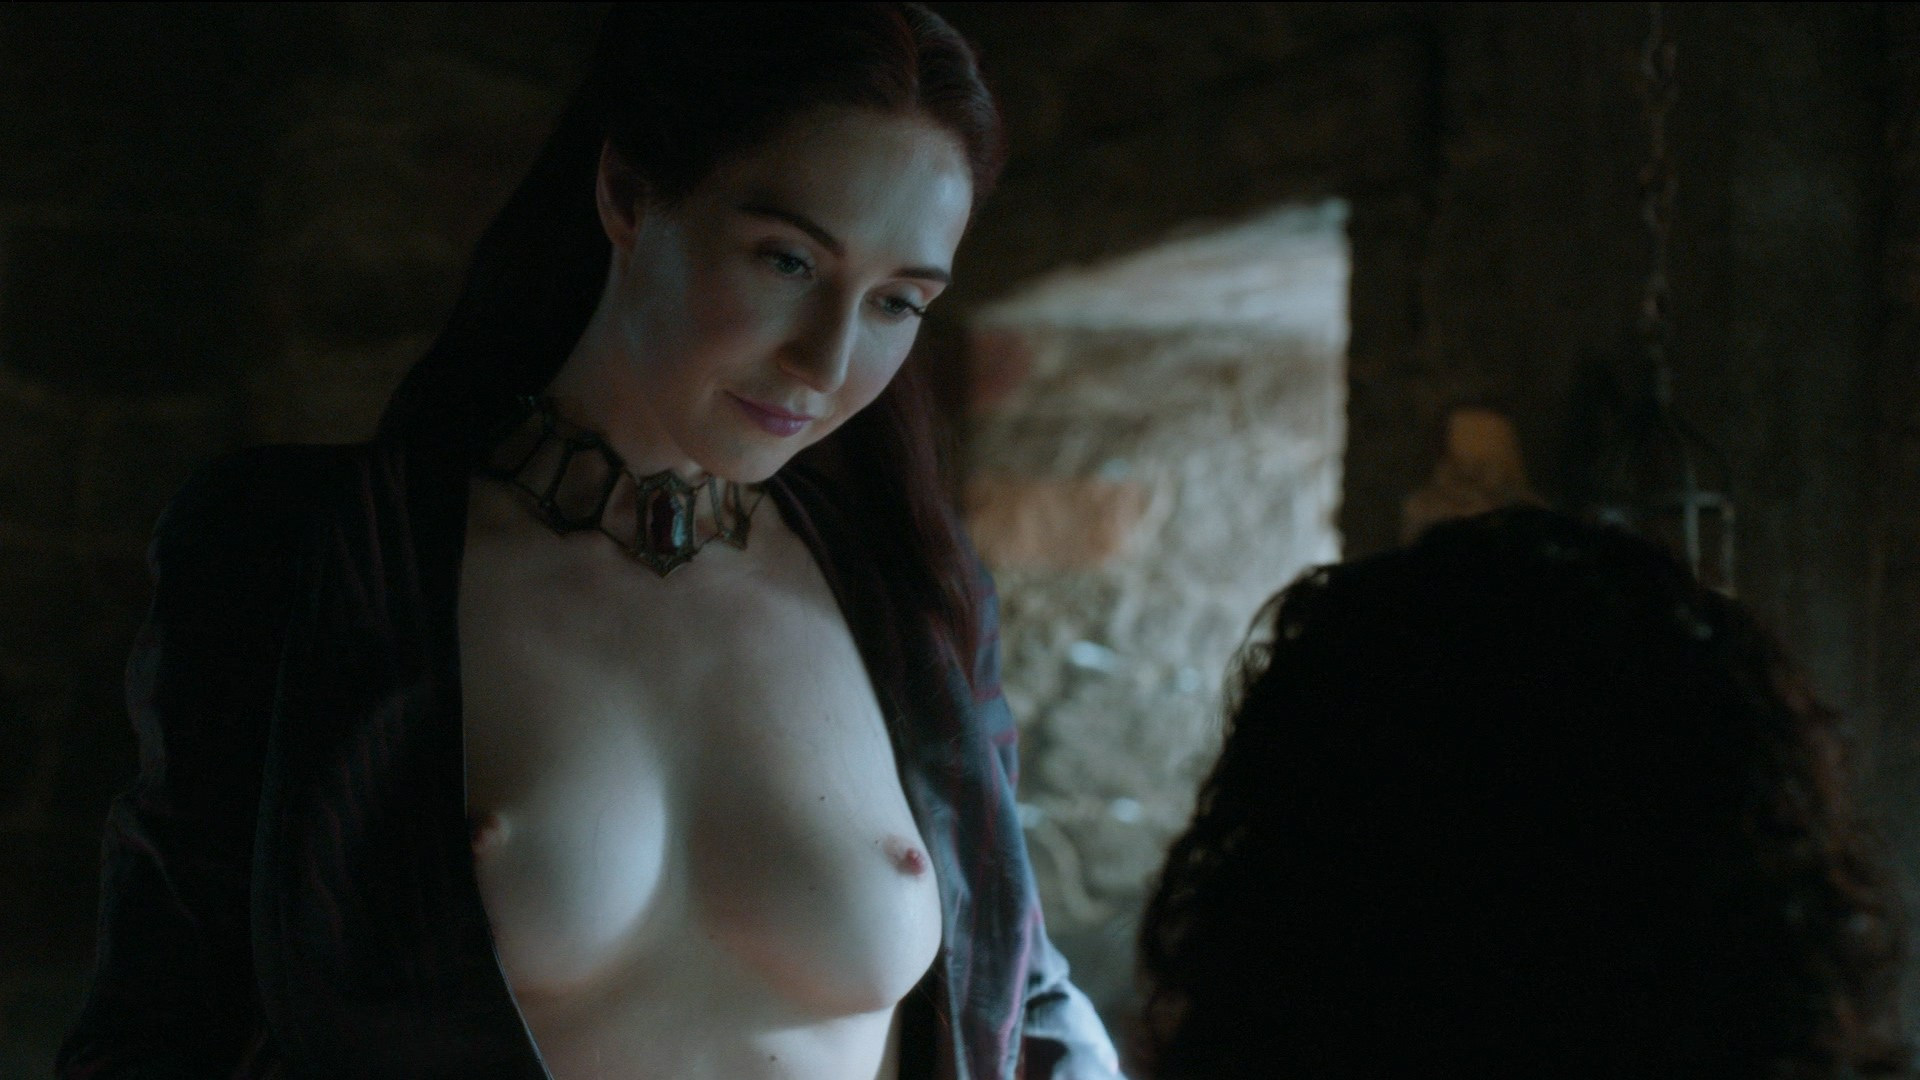 0313180232810_07_Carice-van-Houten-nude-topless-and-Emilia-Clarke-hot-not-nude-Game-of-Thrones-2015-s5e4-hd720-1080p10.jpg